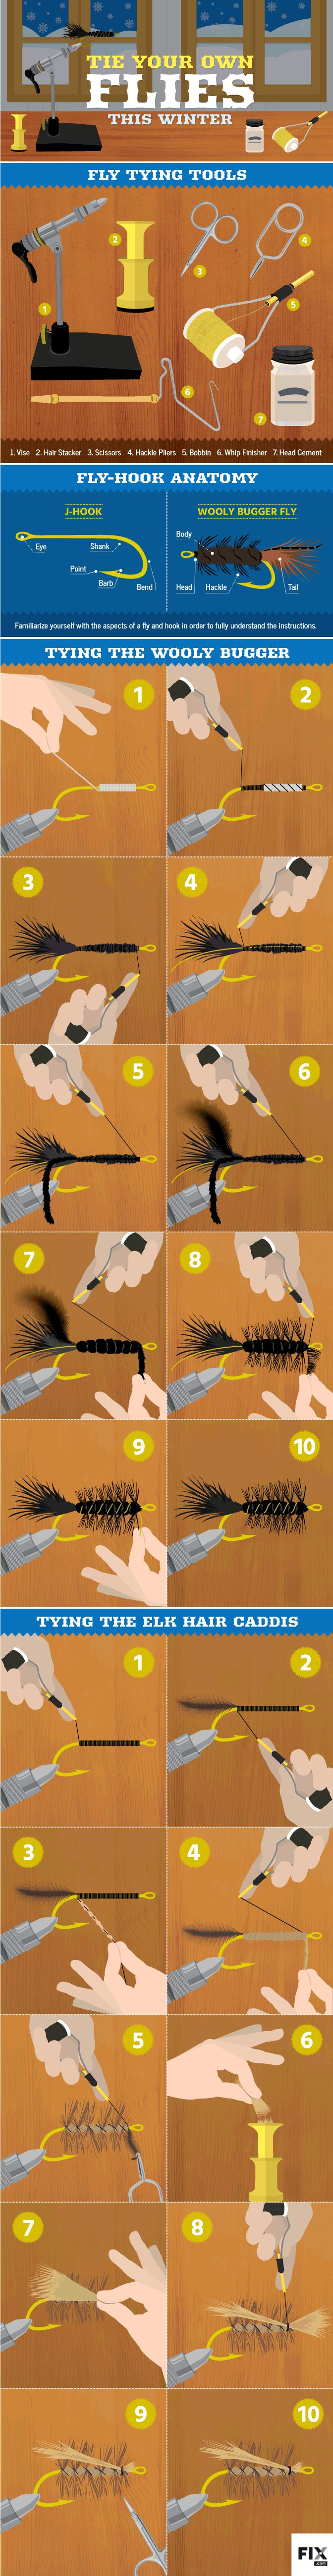 Tying your own flies is a great way to pass the hours this winter! #FlyFishing